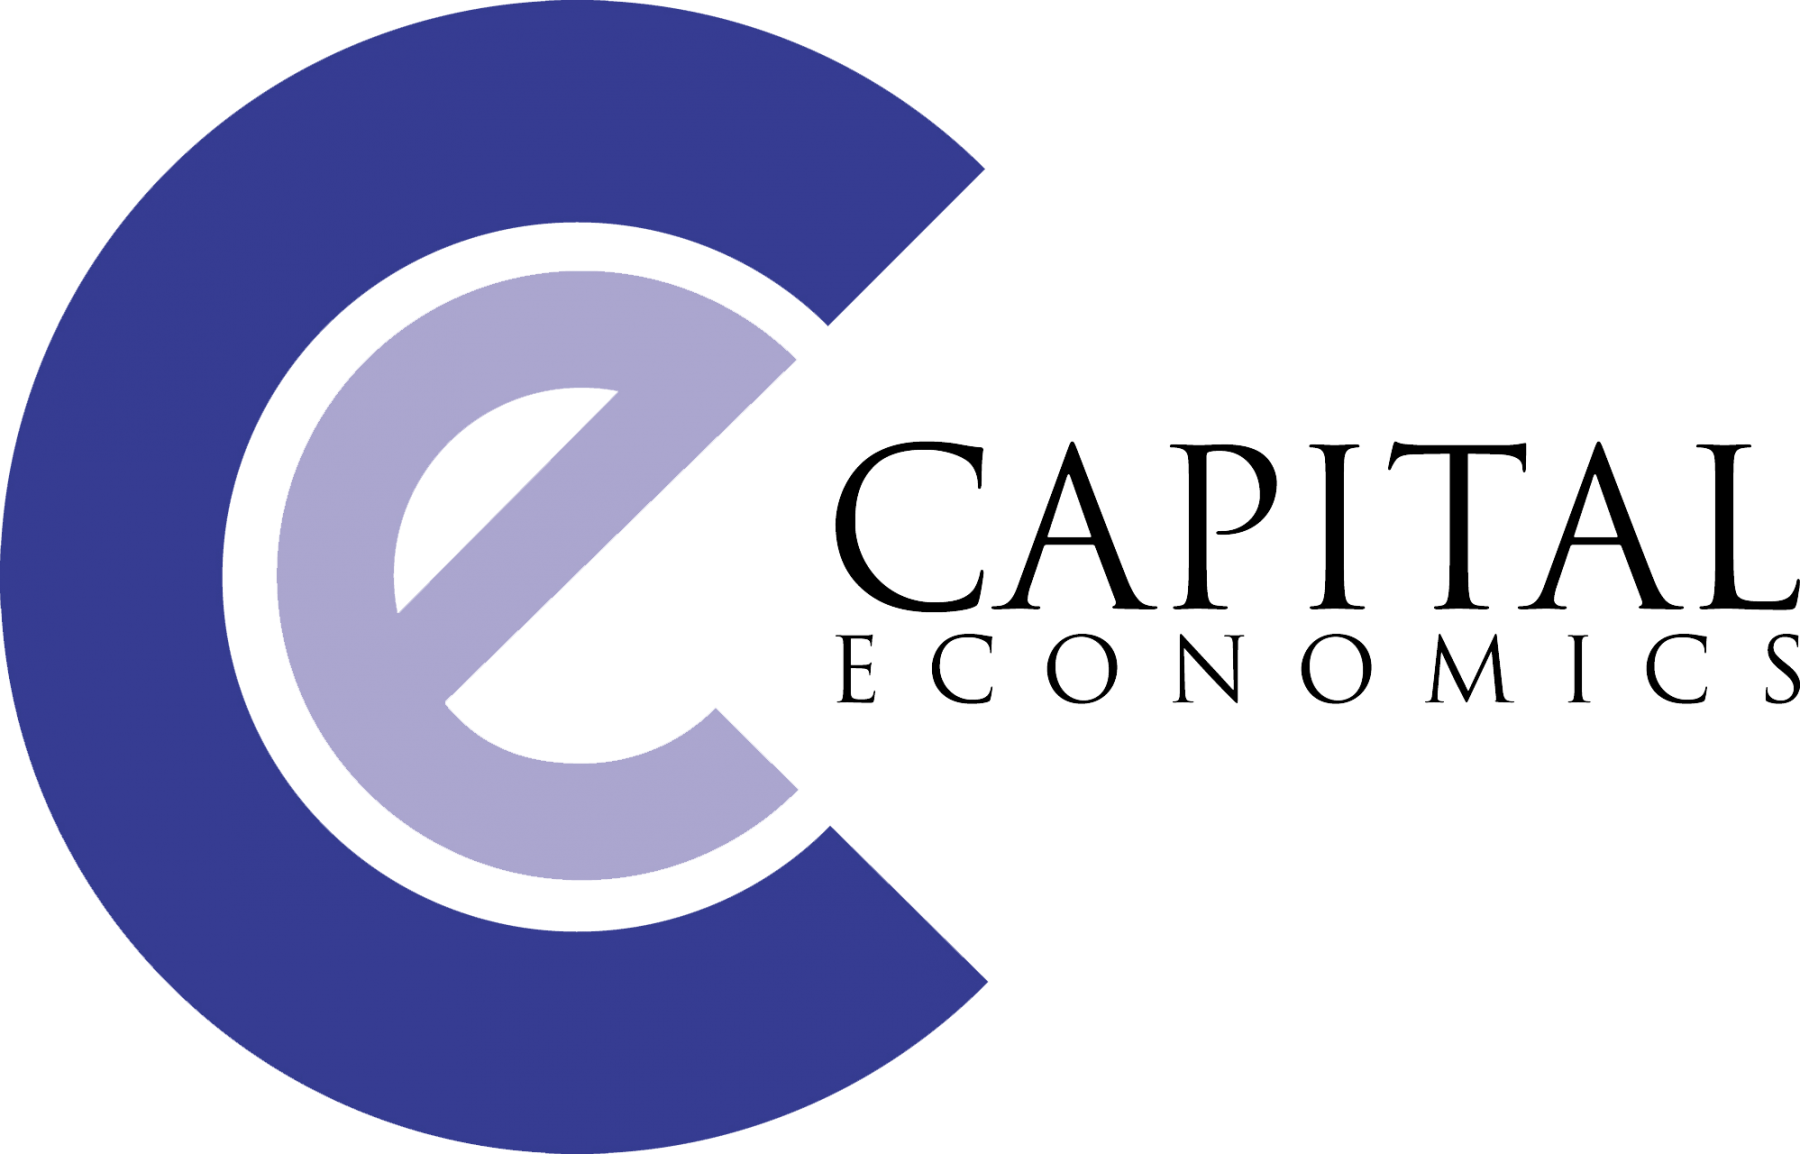 Capital economics 2.png